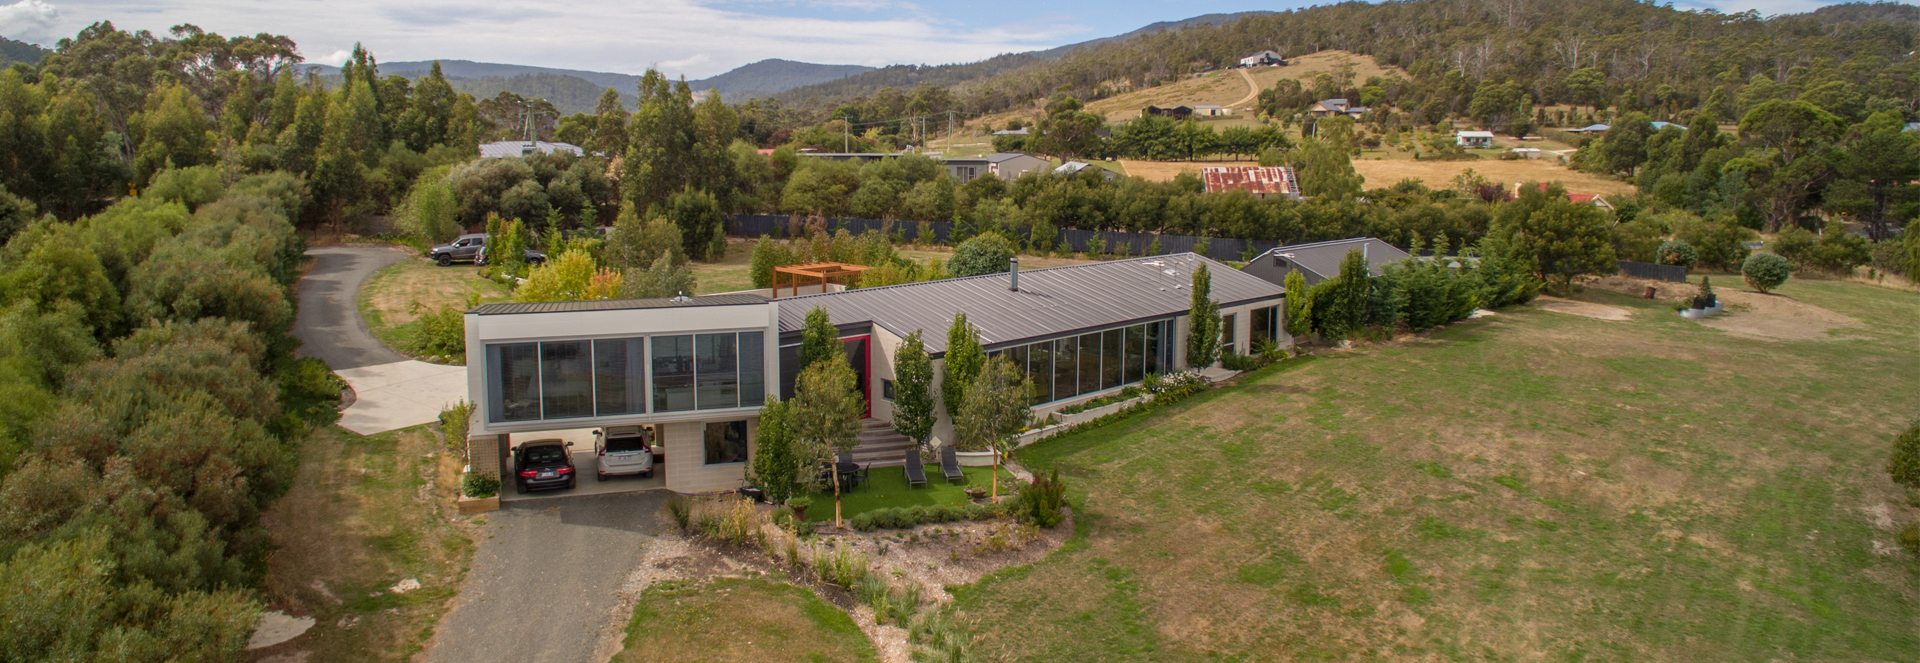 Real Estate Photography - Aerial Vision Australia